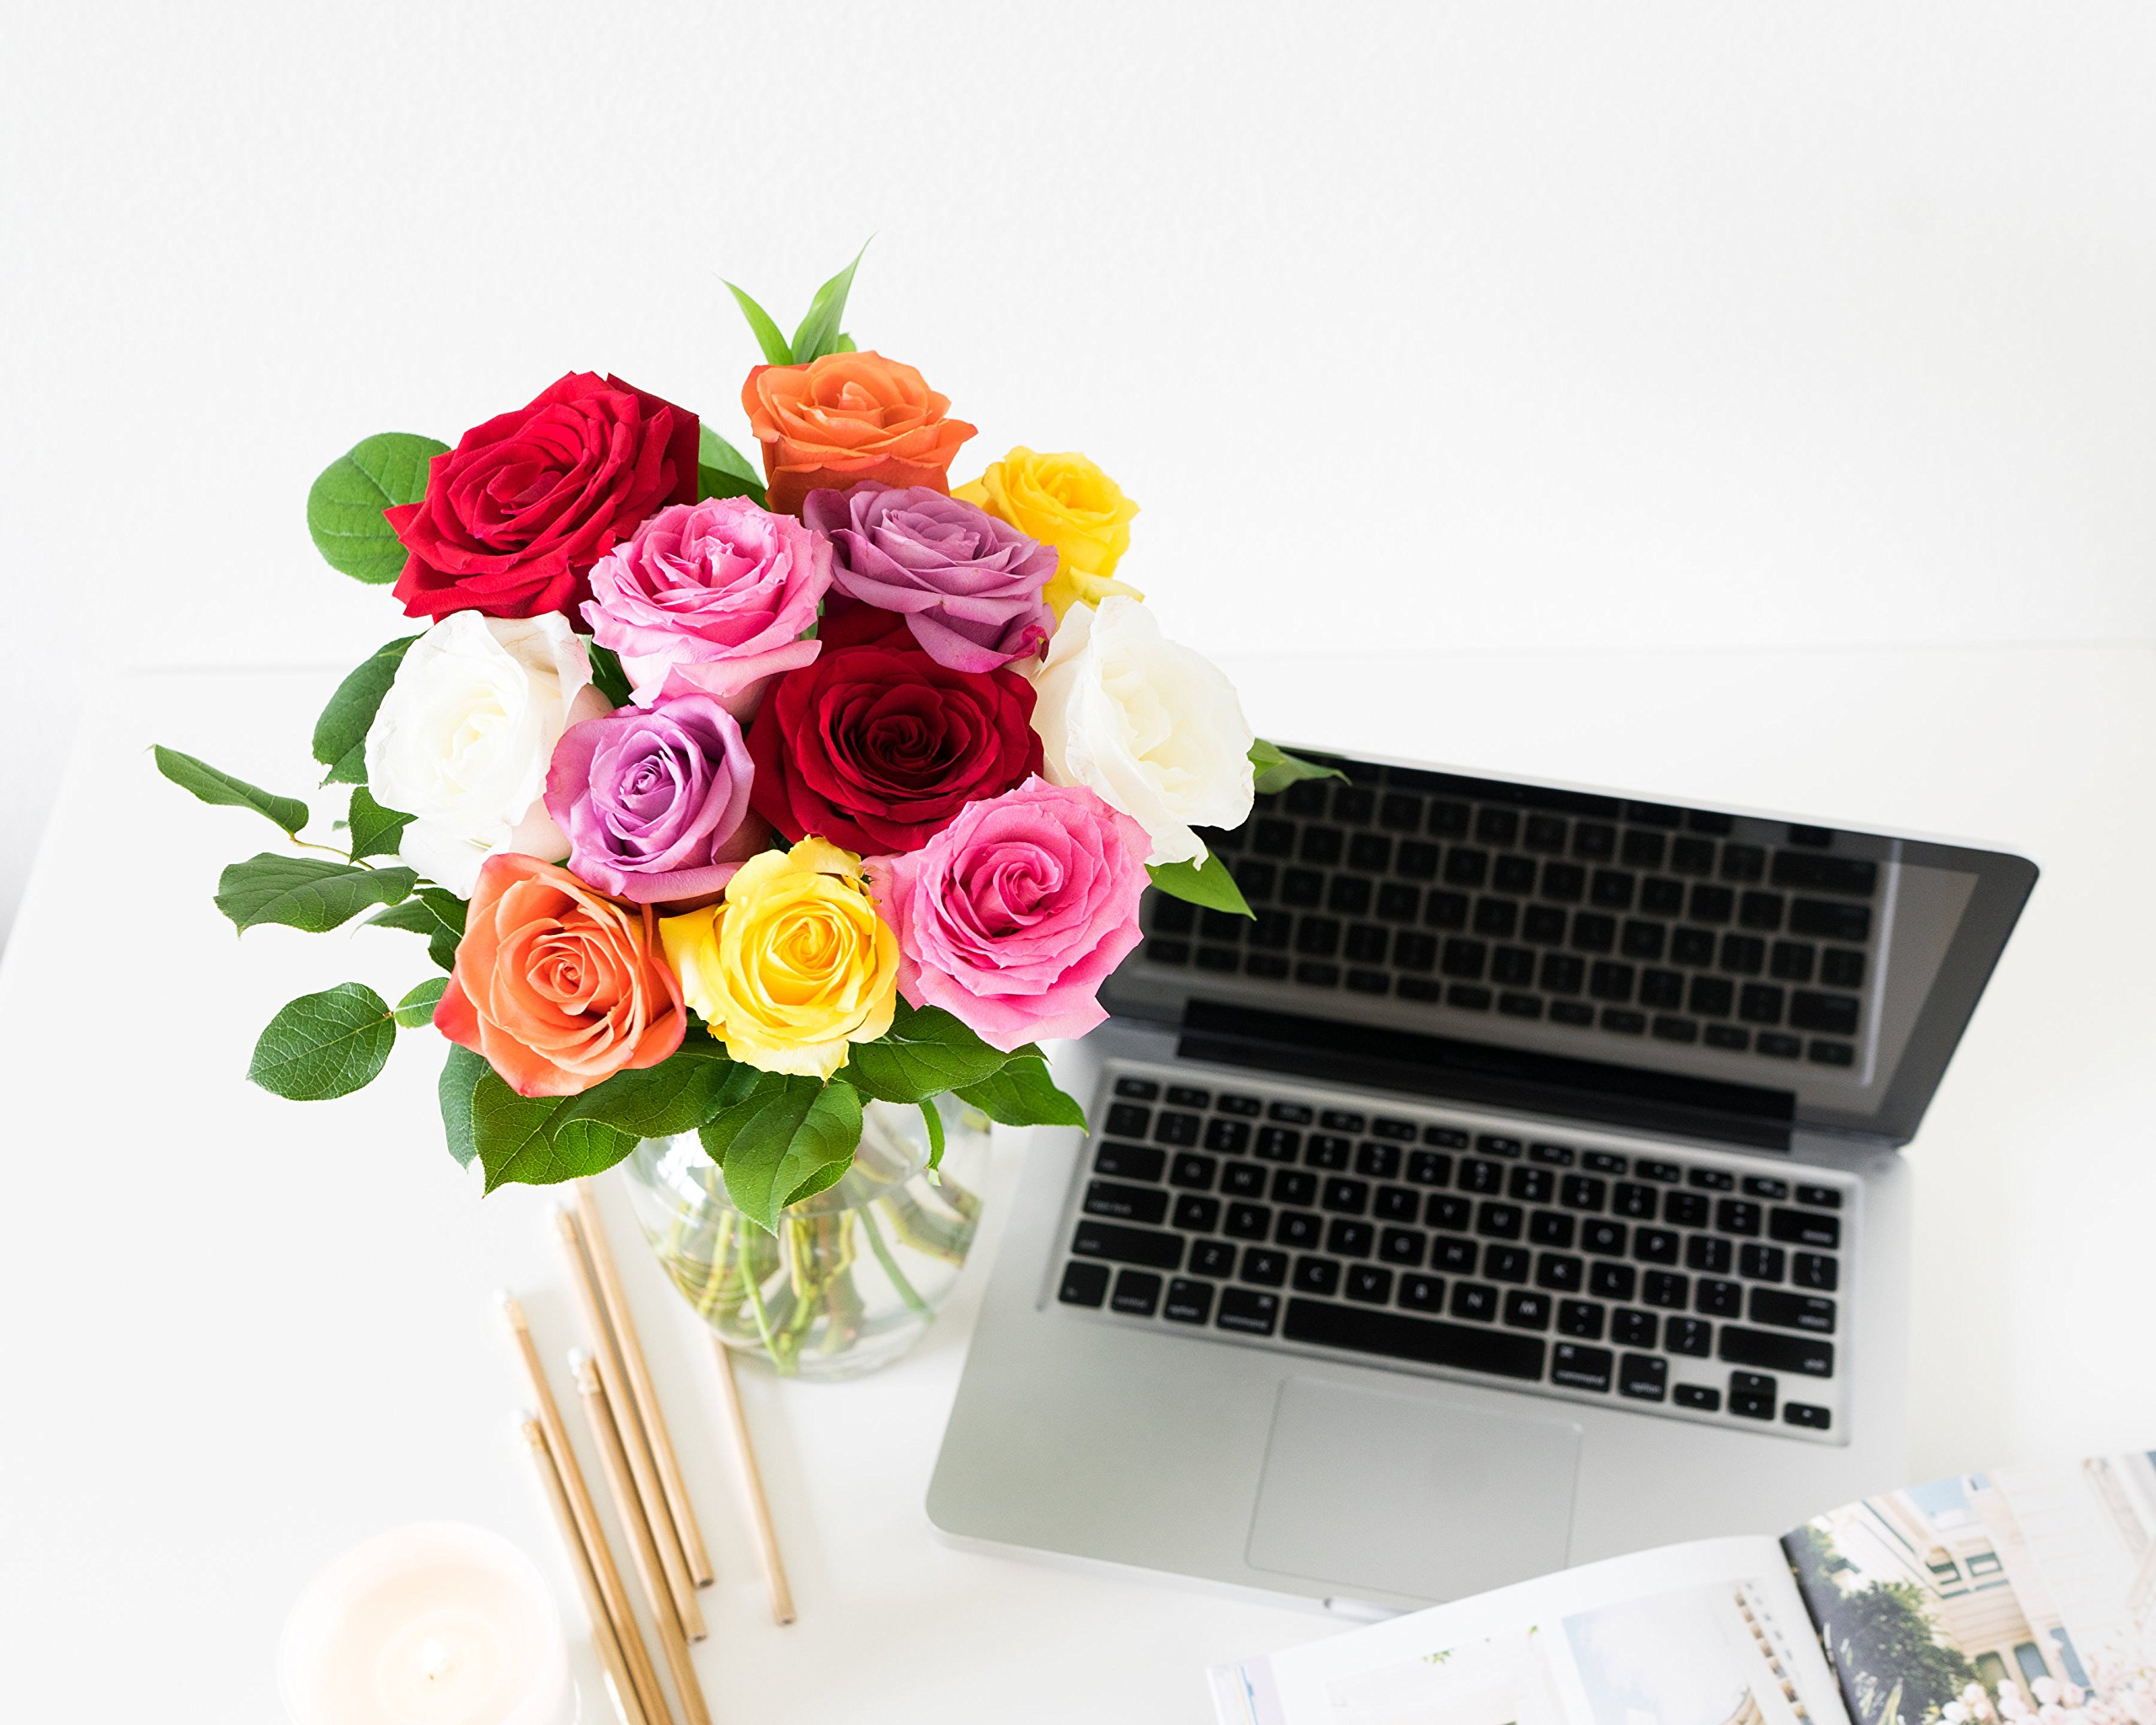 Flowers - One Dozen Multi-Color Roses (Free Vase Included)